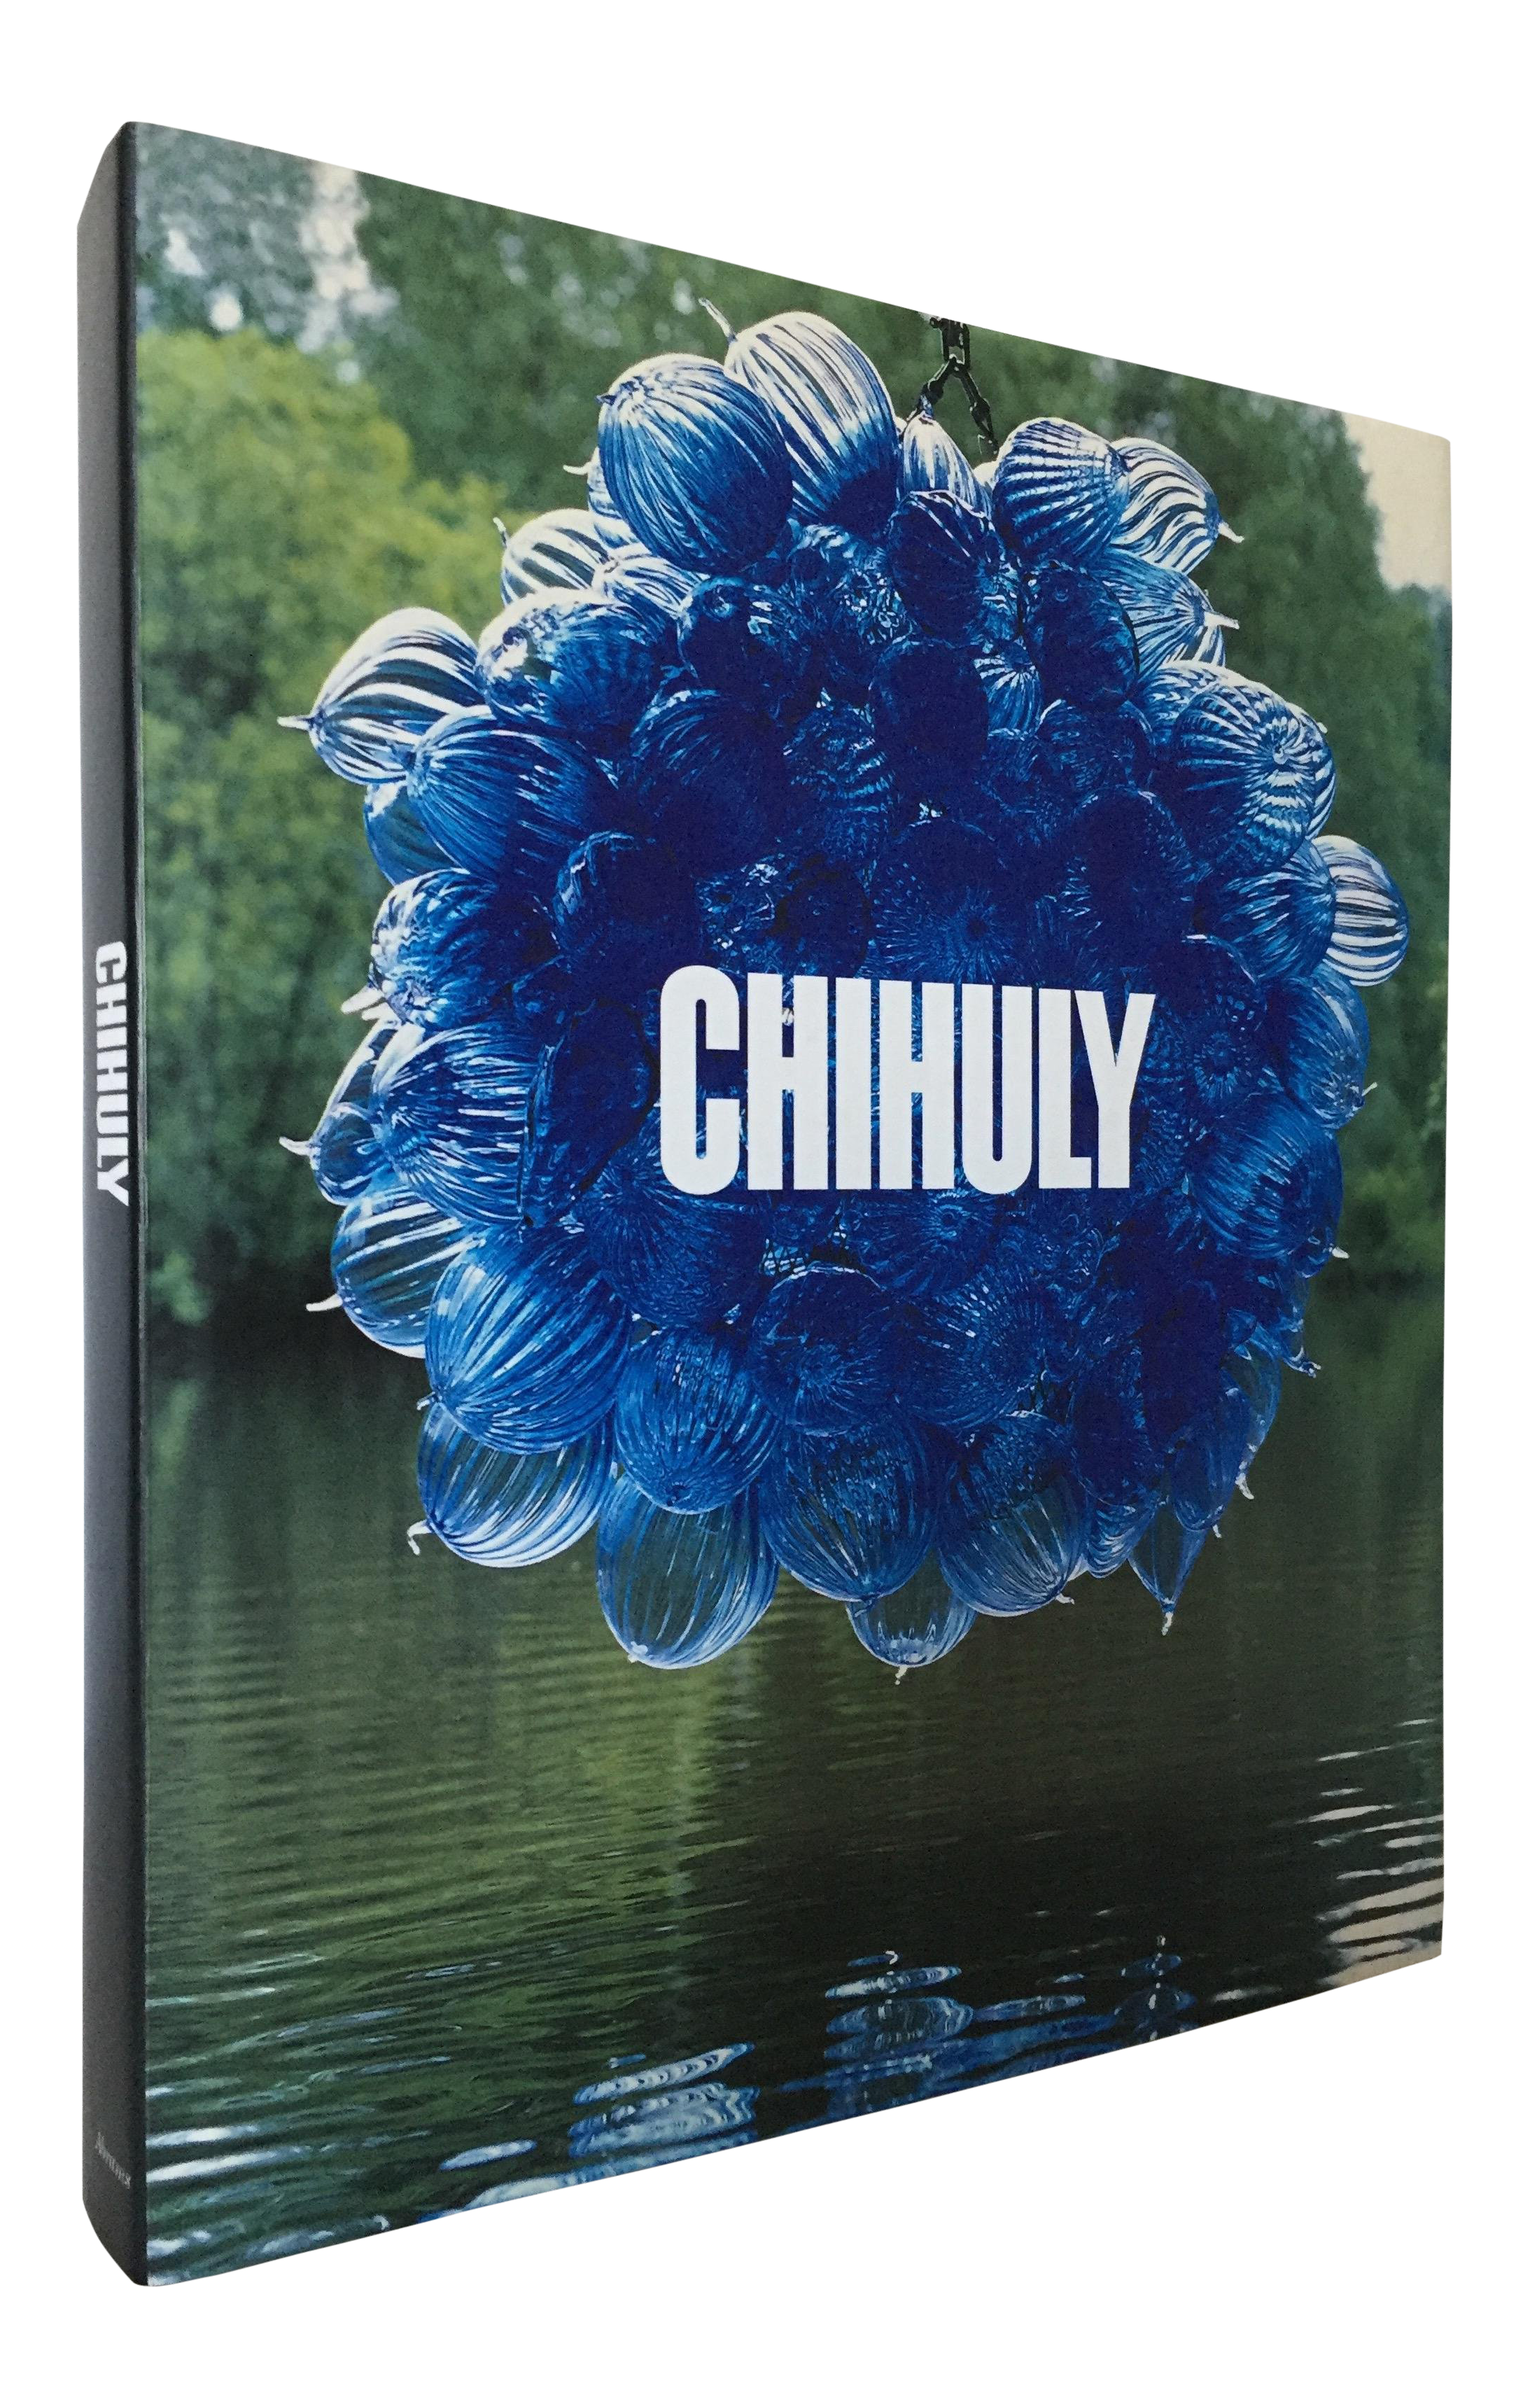 Chihuly drawing poster. Signed by artist author